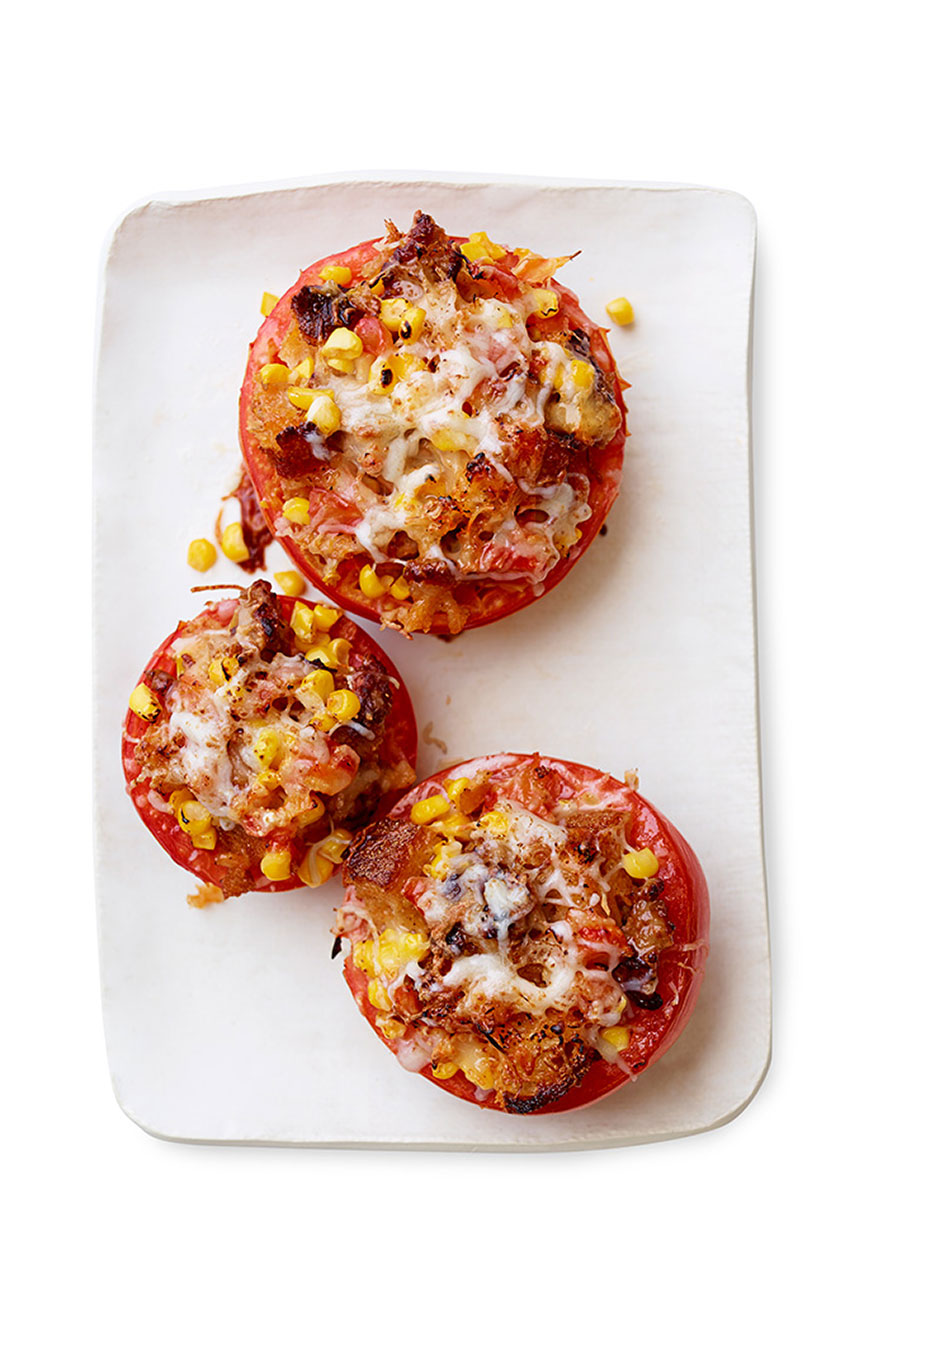 Stuffed Tomatoes with Sausage and Corn